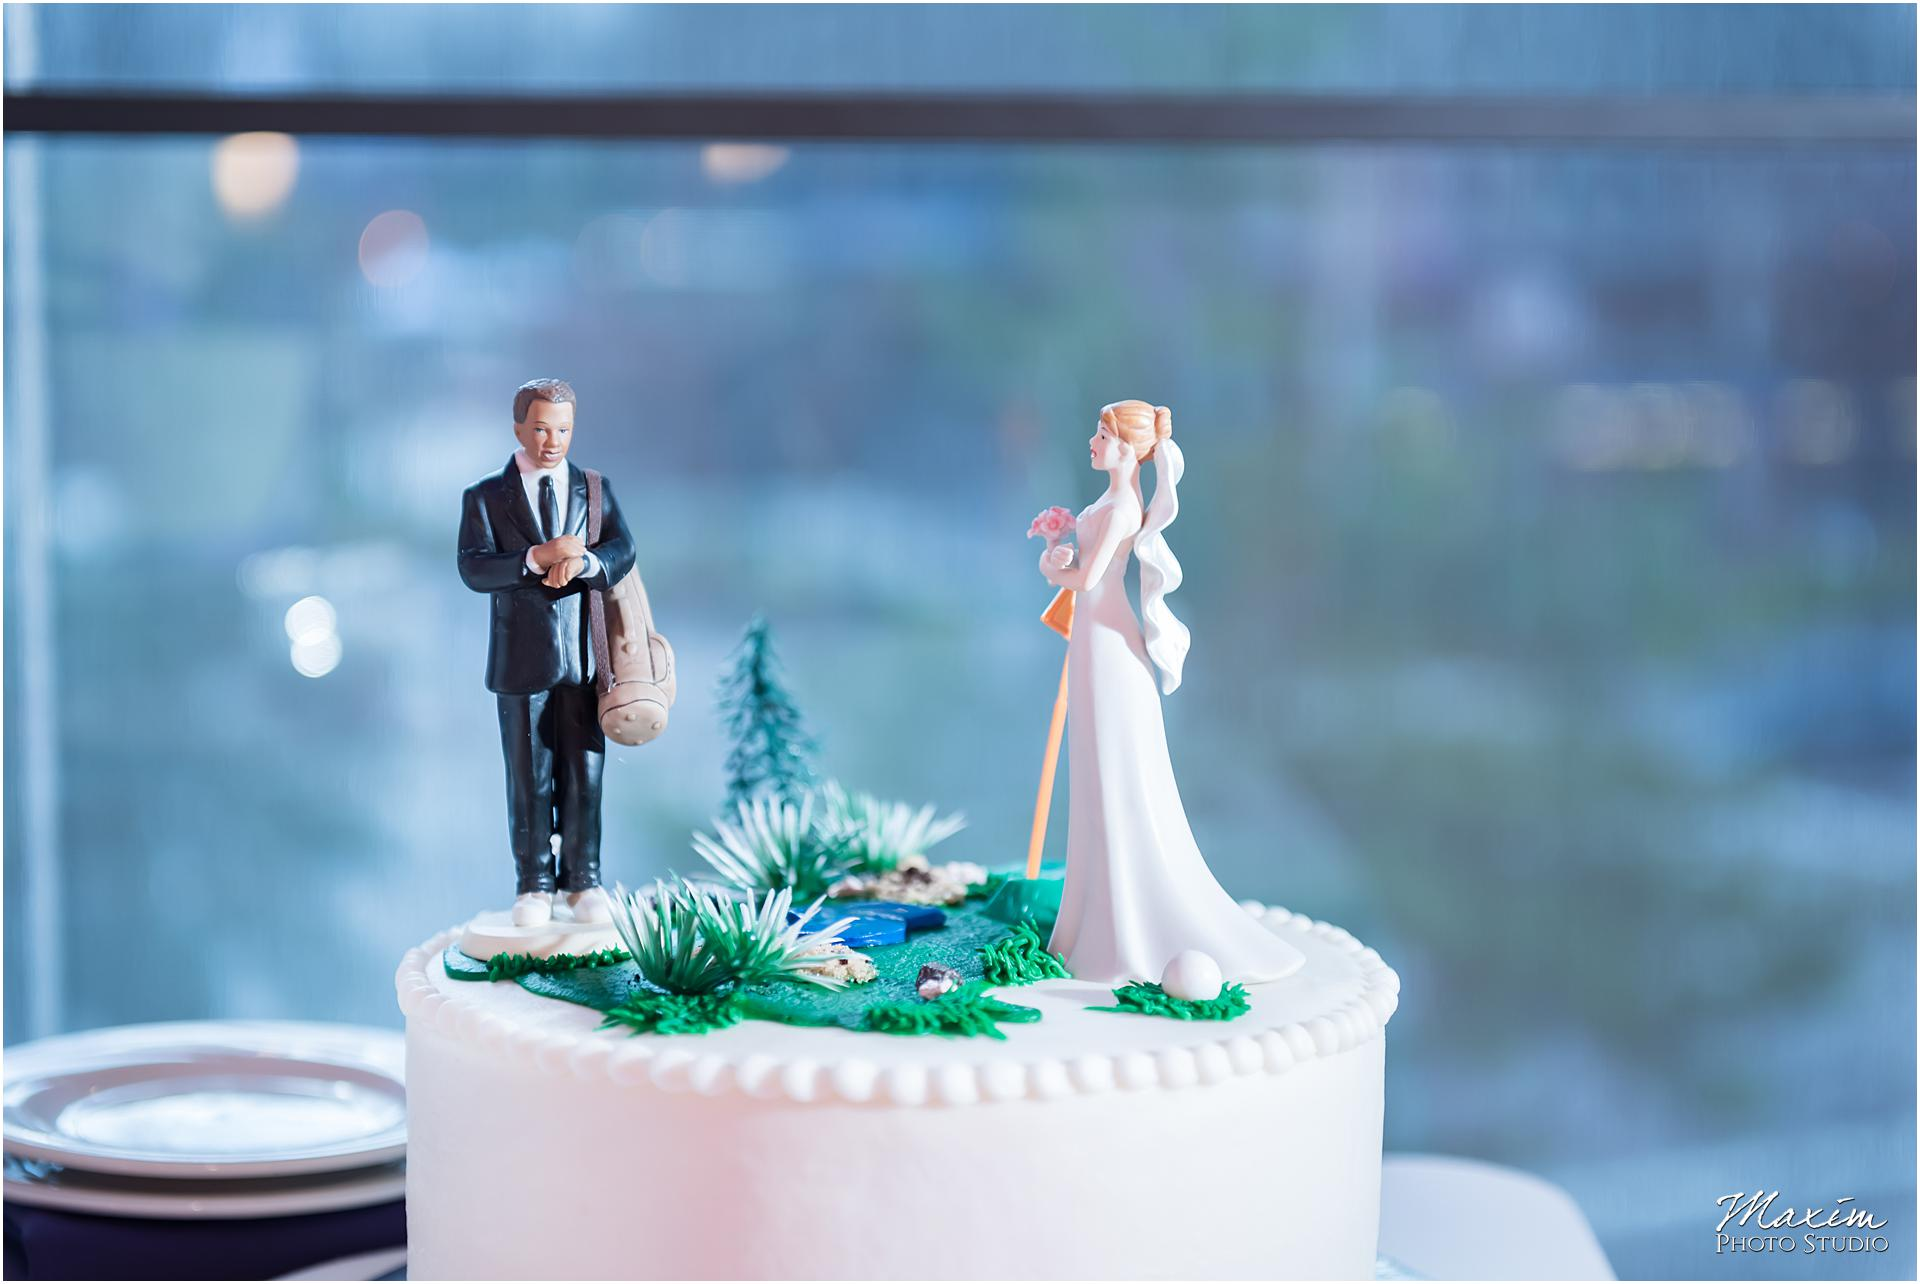 The Center Cincinnati Wedding Reception cake topper